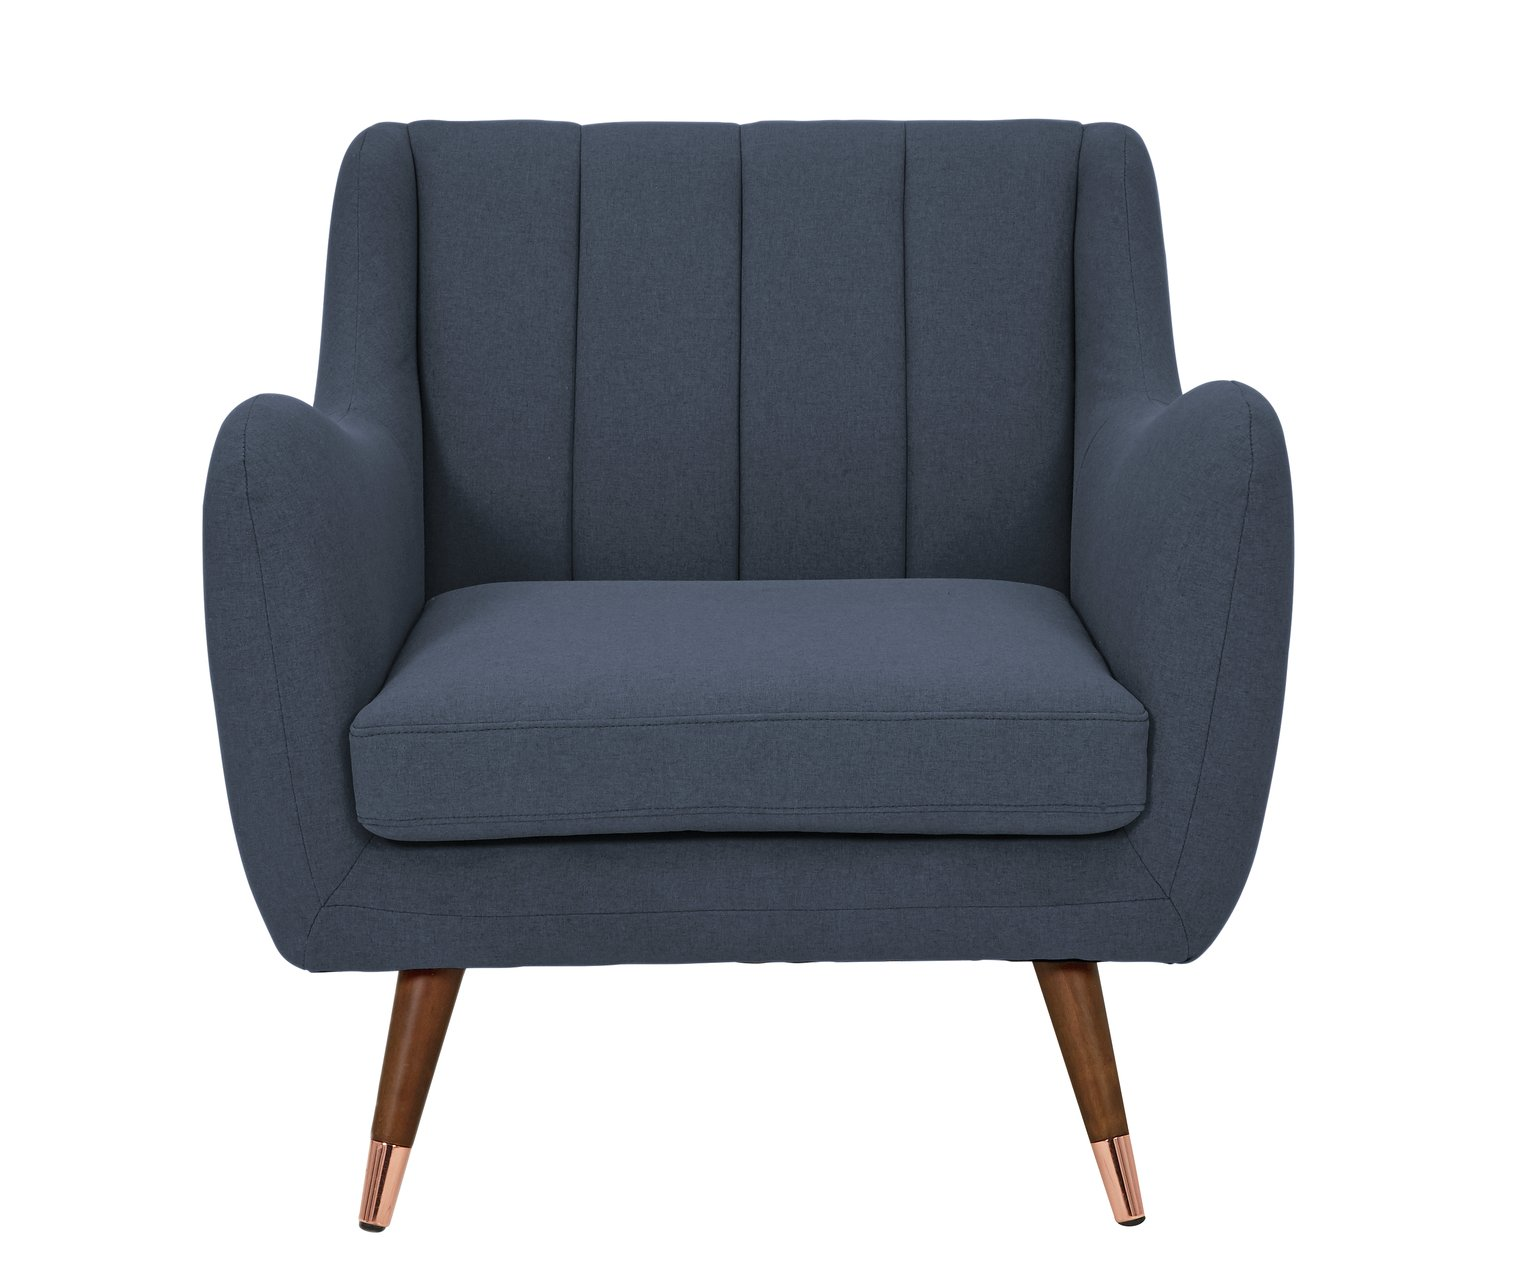 Argos Home Leila Fabric Armchair - Dark Blue